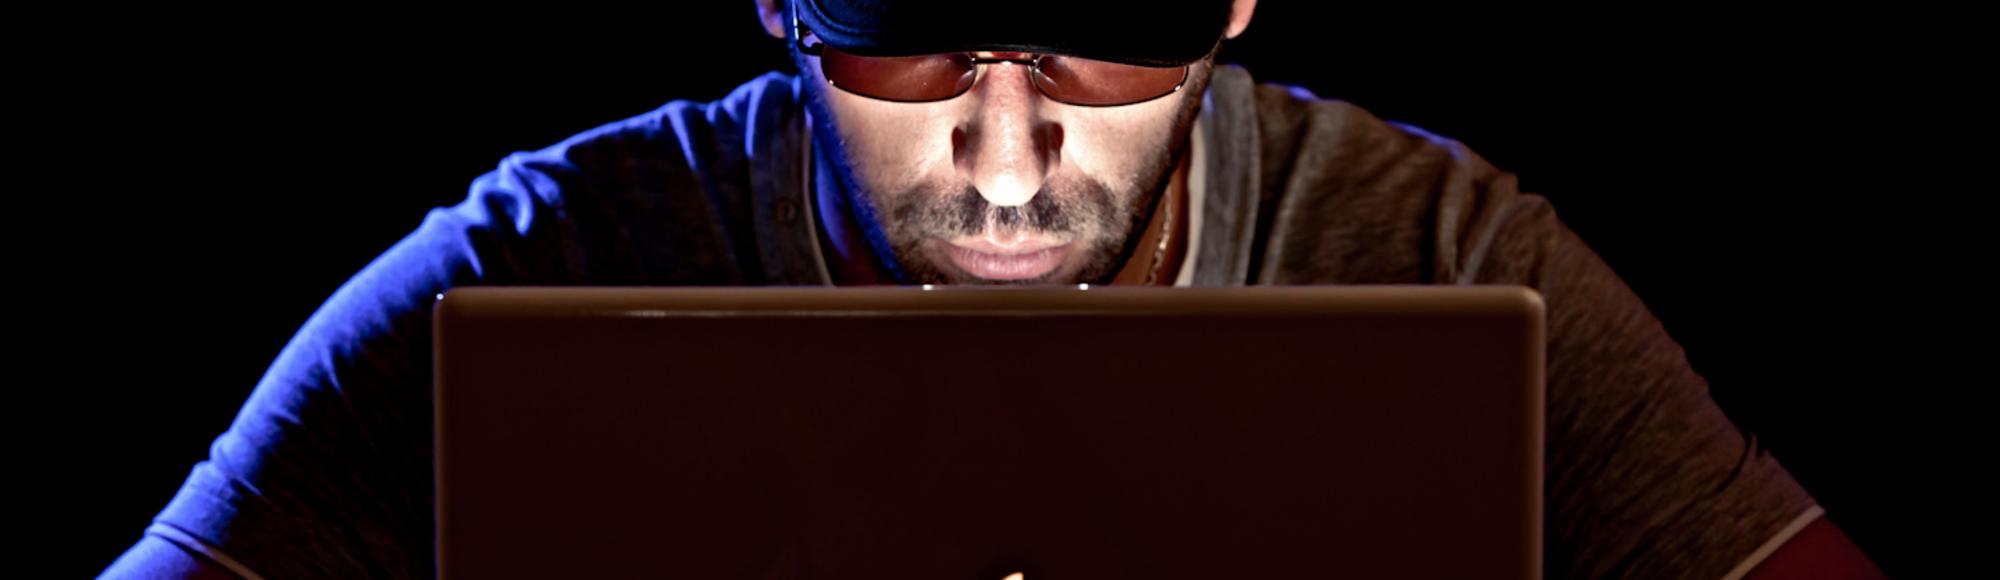 How Paranoid Should You Be Online?